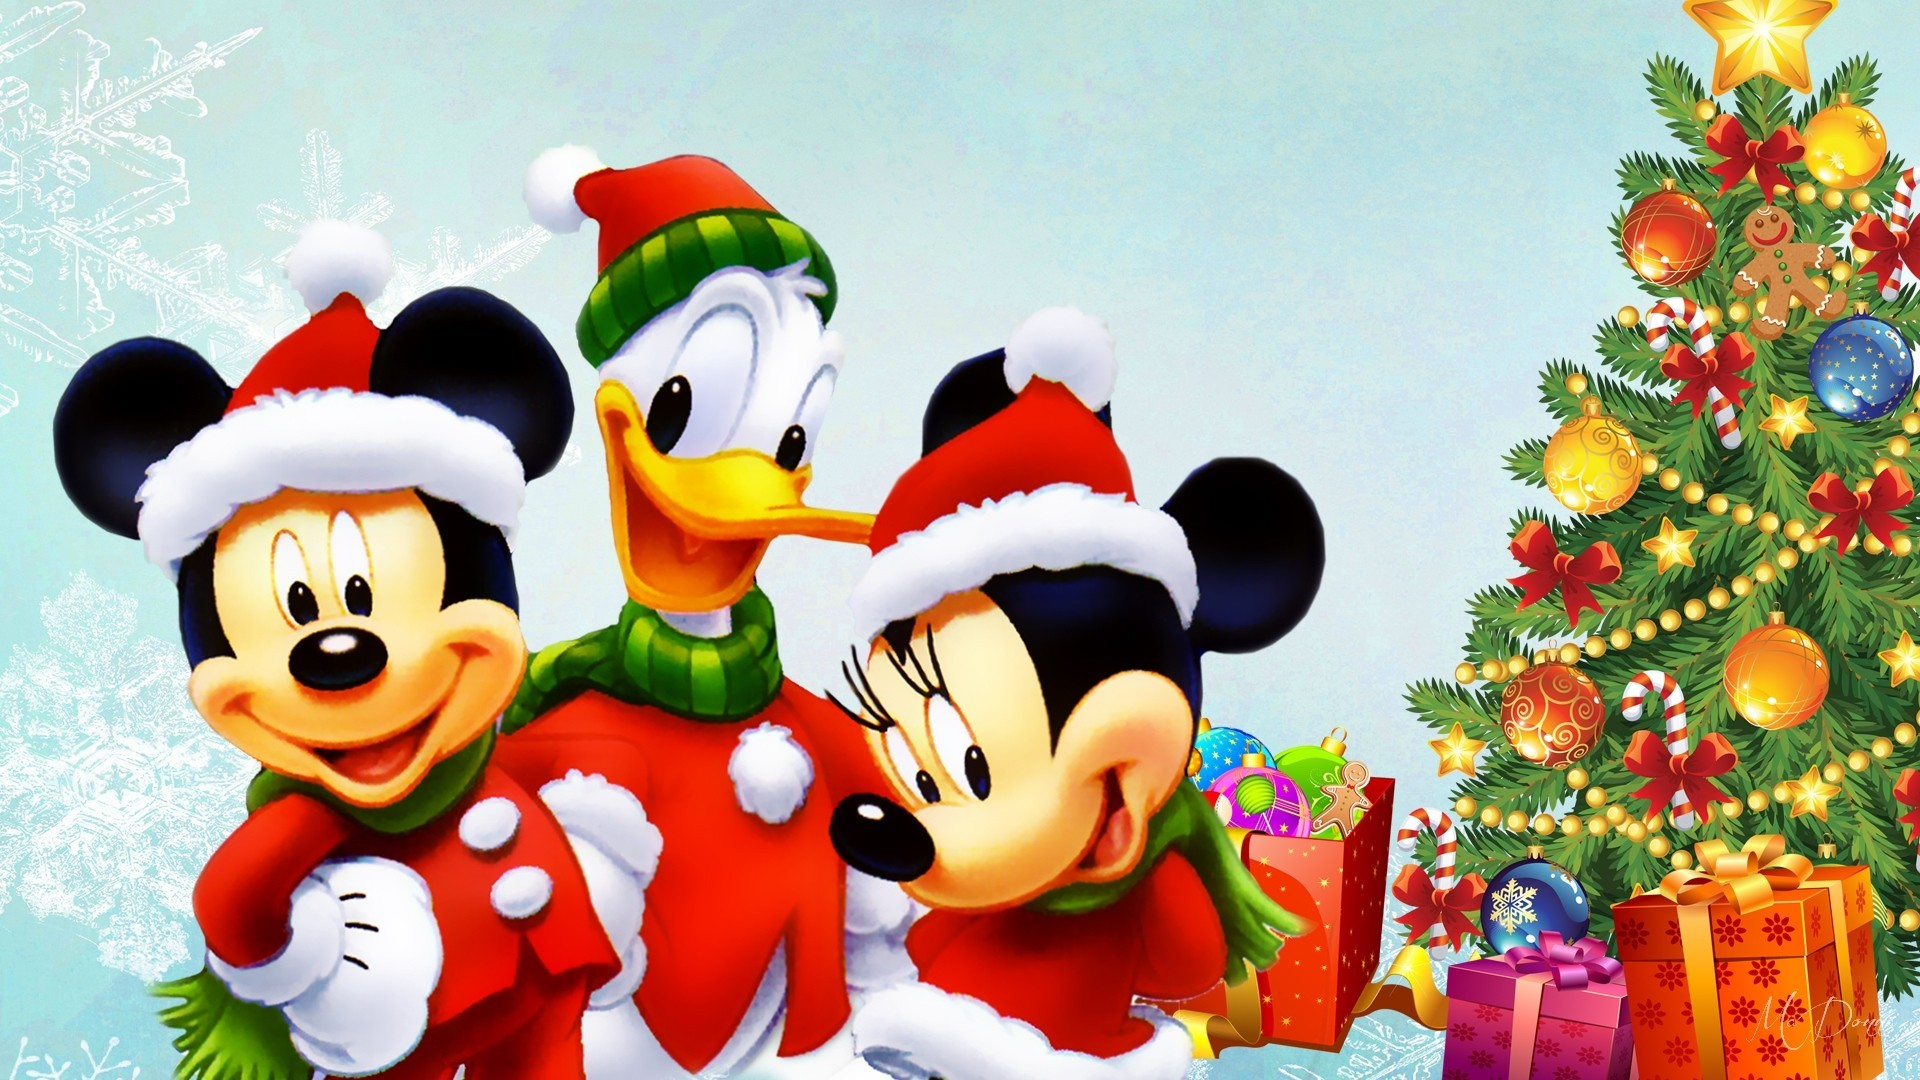 1920x1080 Disney Tree Mickey Presents Duck Donald Christmas Mouse Minnie Gifts Winter  Picture Backgrounds For Desktop -